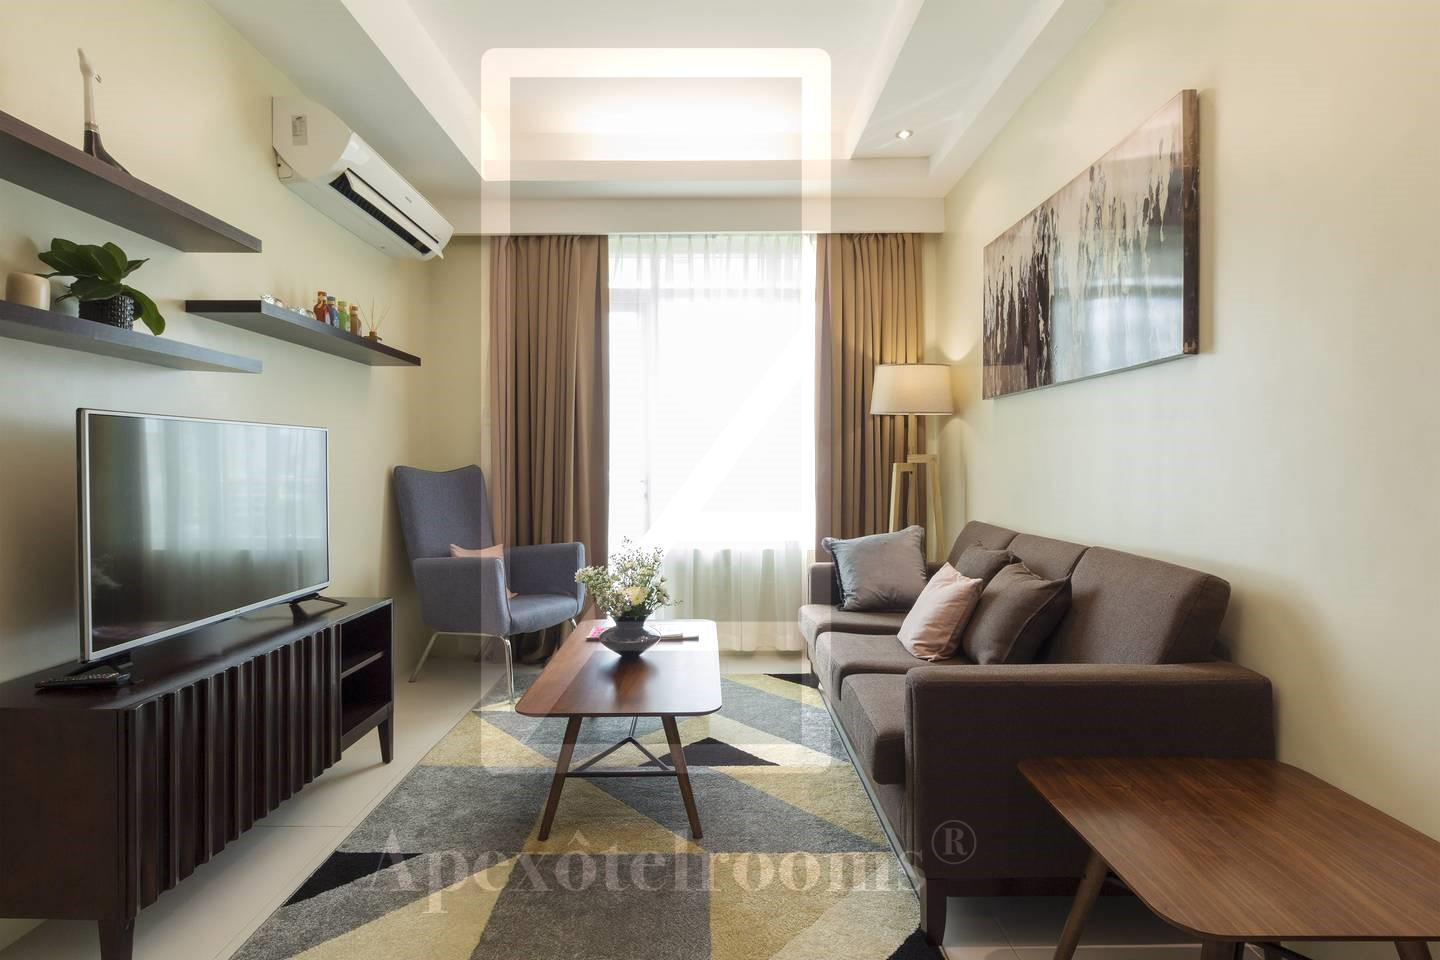 Apartment near Ayala Padgett Place big new sunny - Hotels Information/Map/Reviews/Reservation